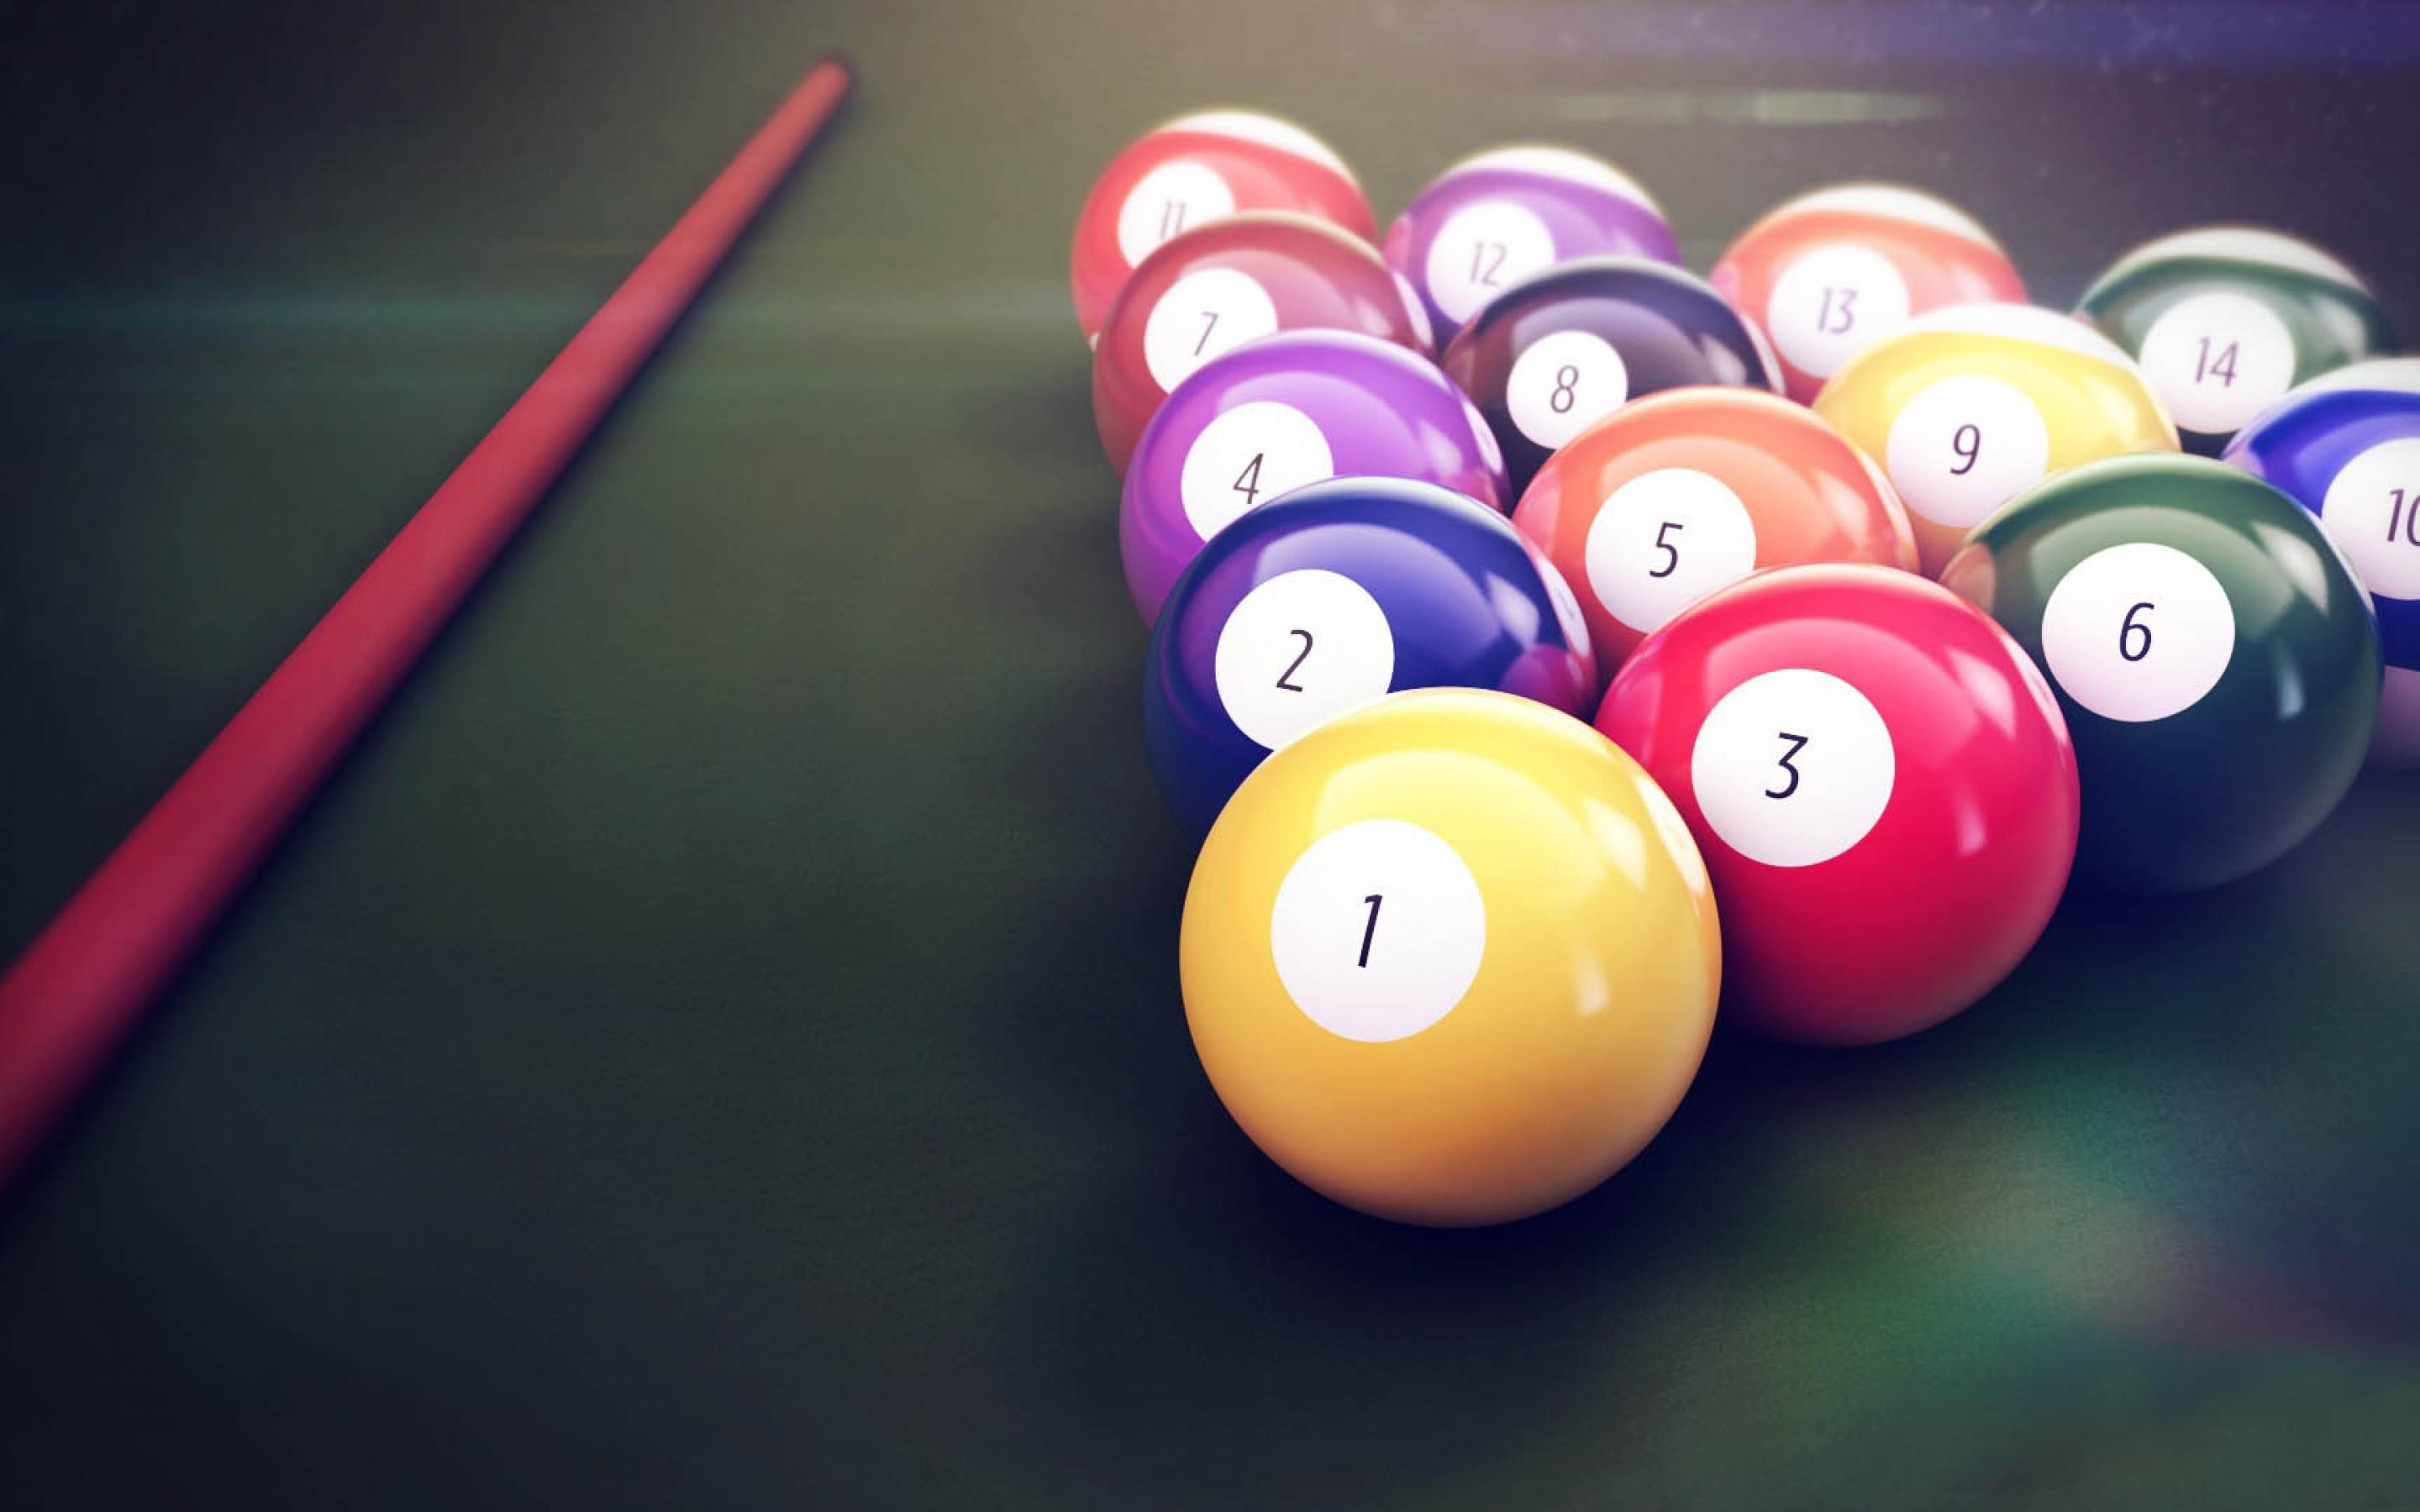 Billiard balls wallpapers and images   wallpapers pictures photos 2880x1800